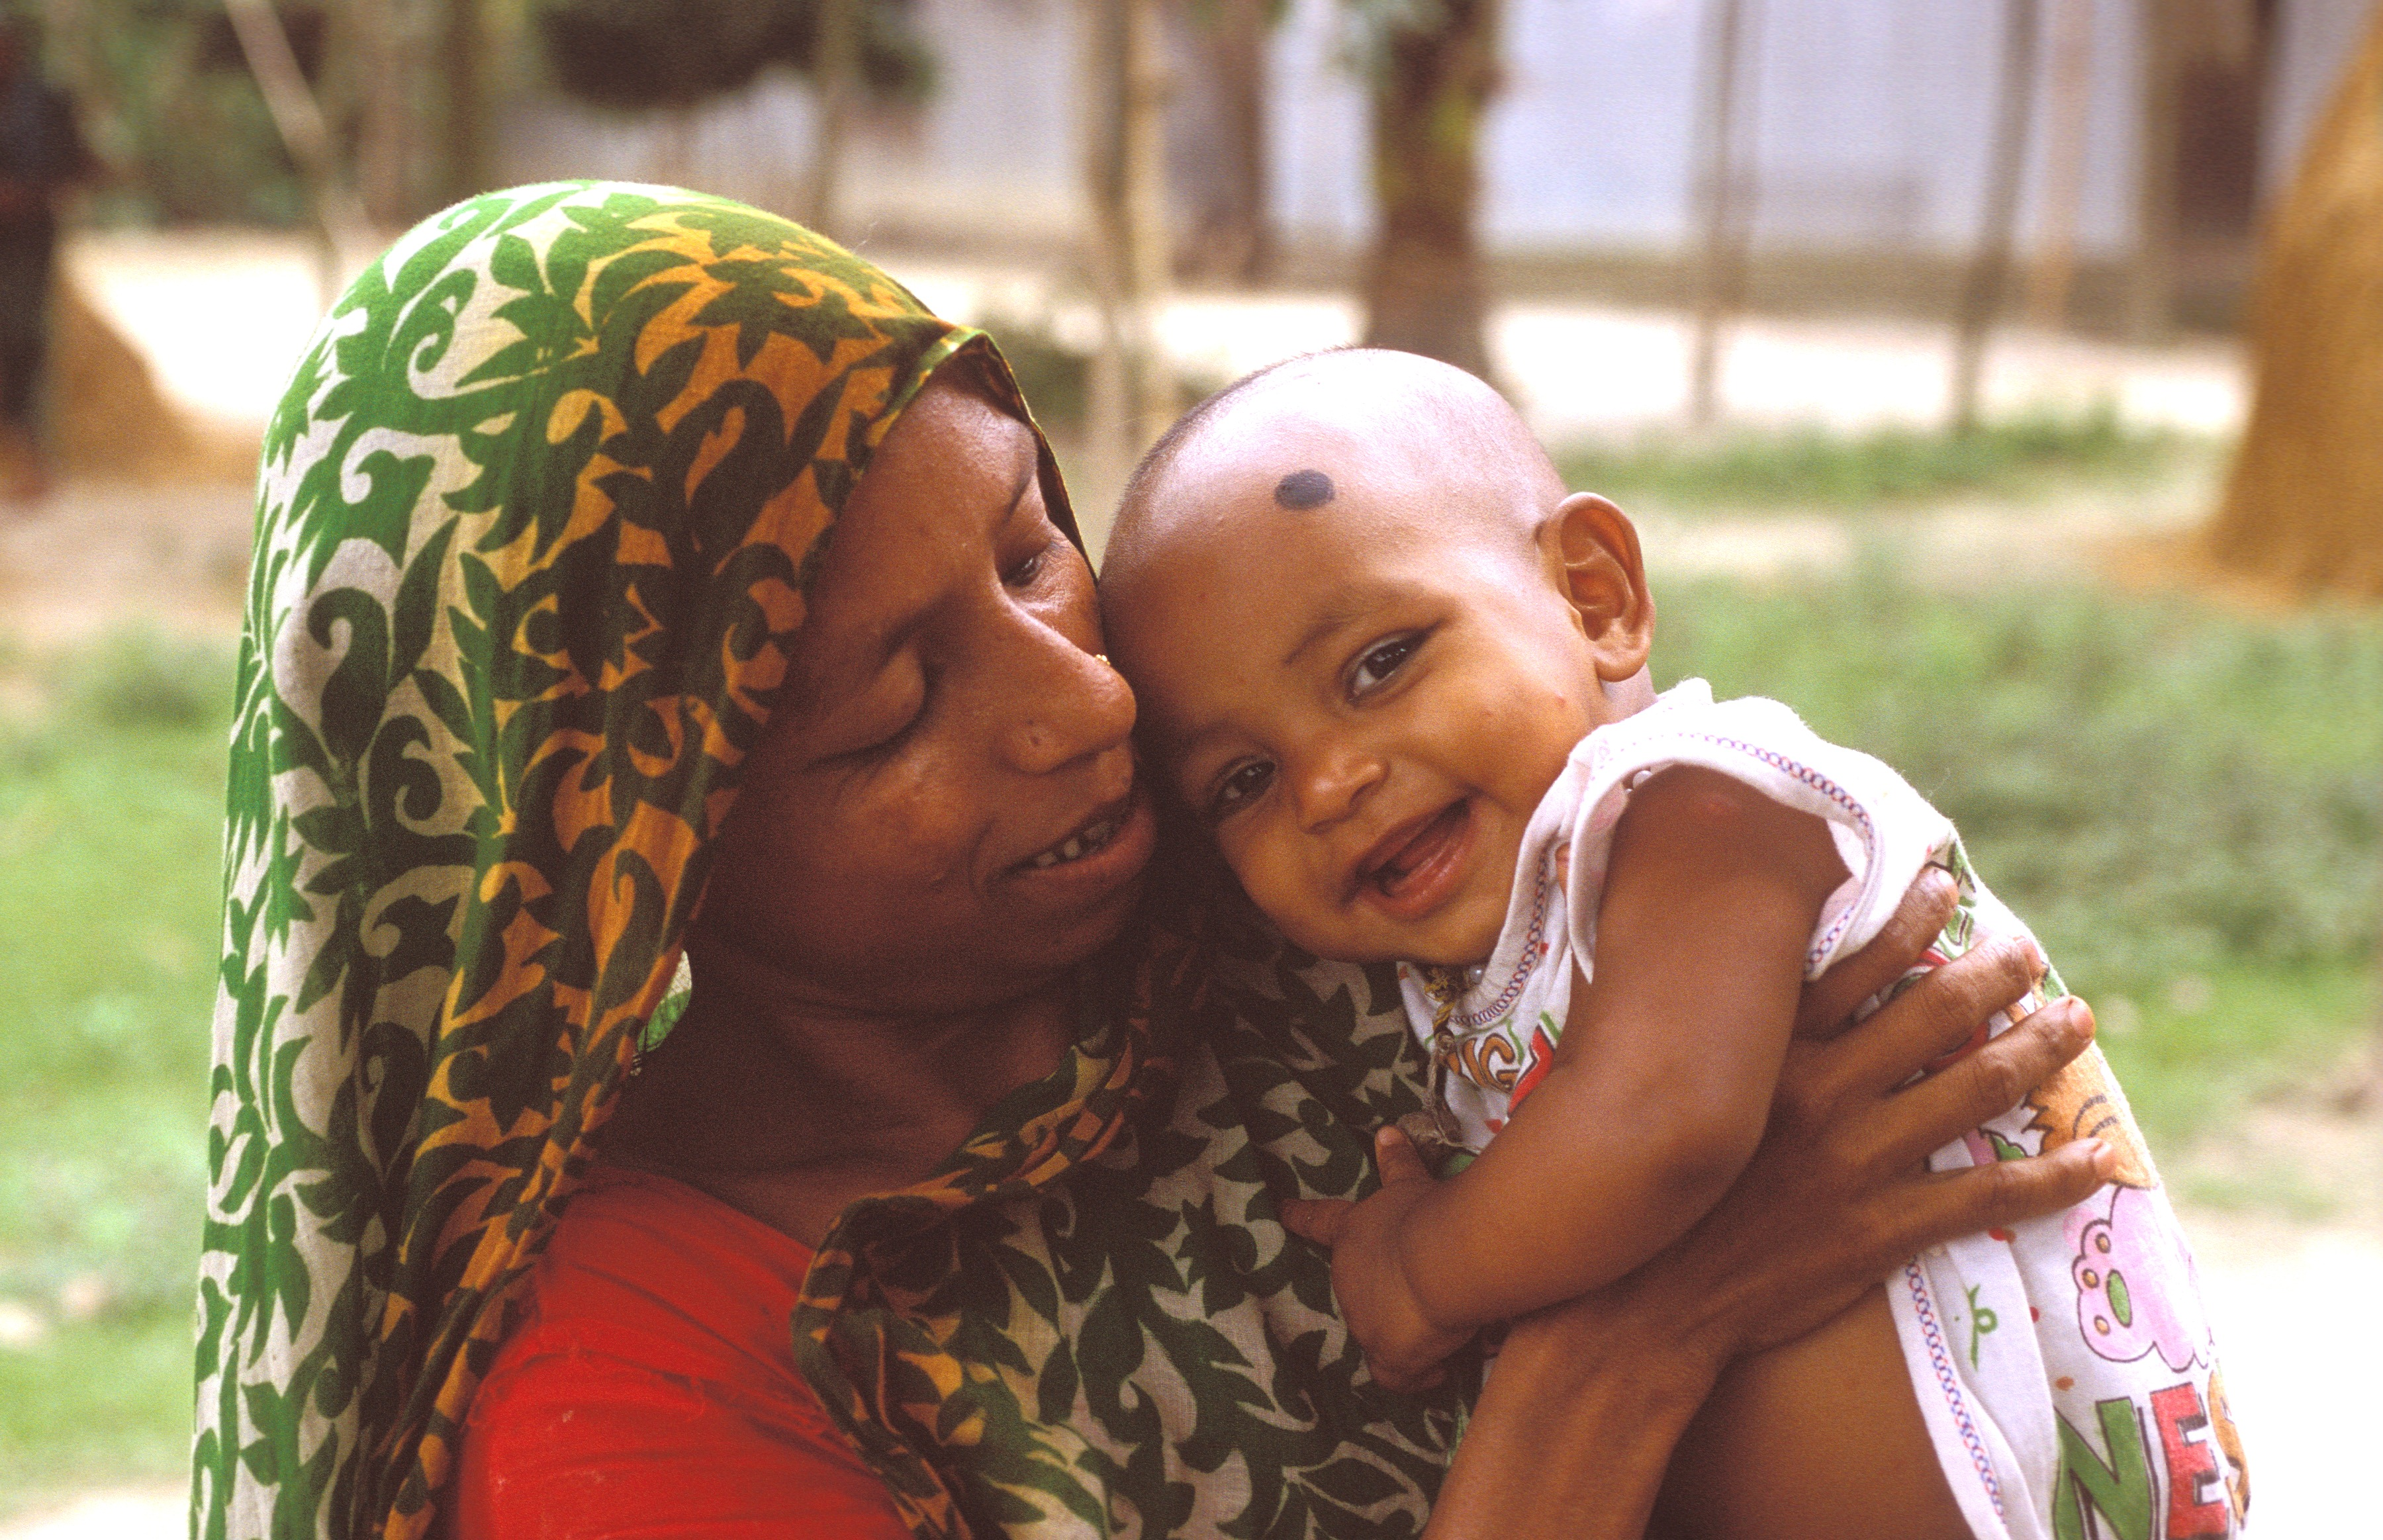 A woman  and child at a community nutrition center in Bangladesh